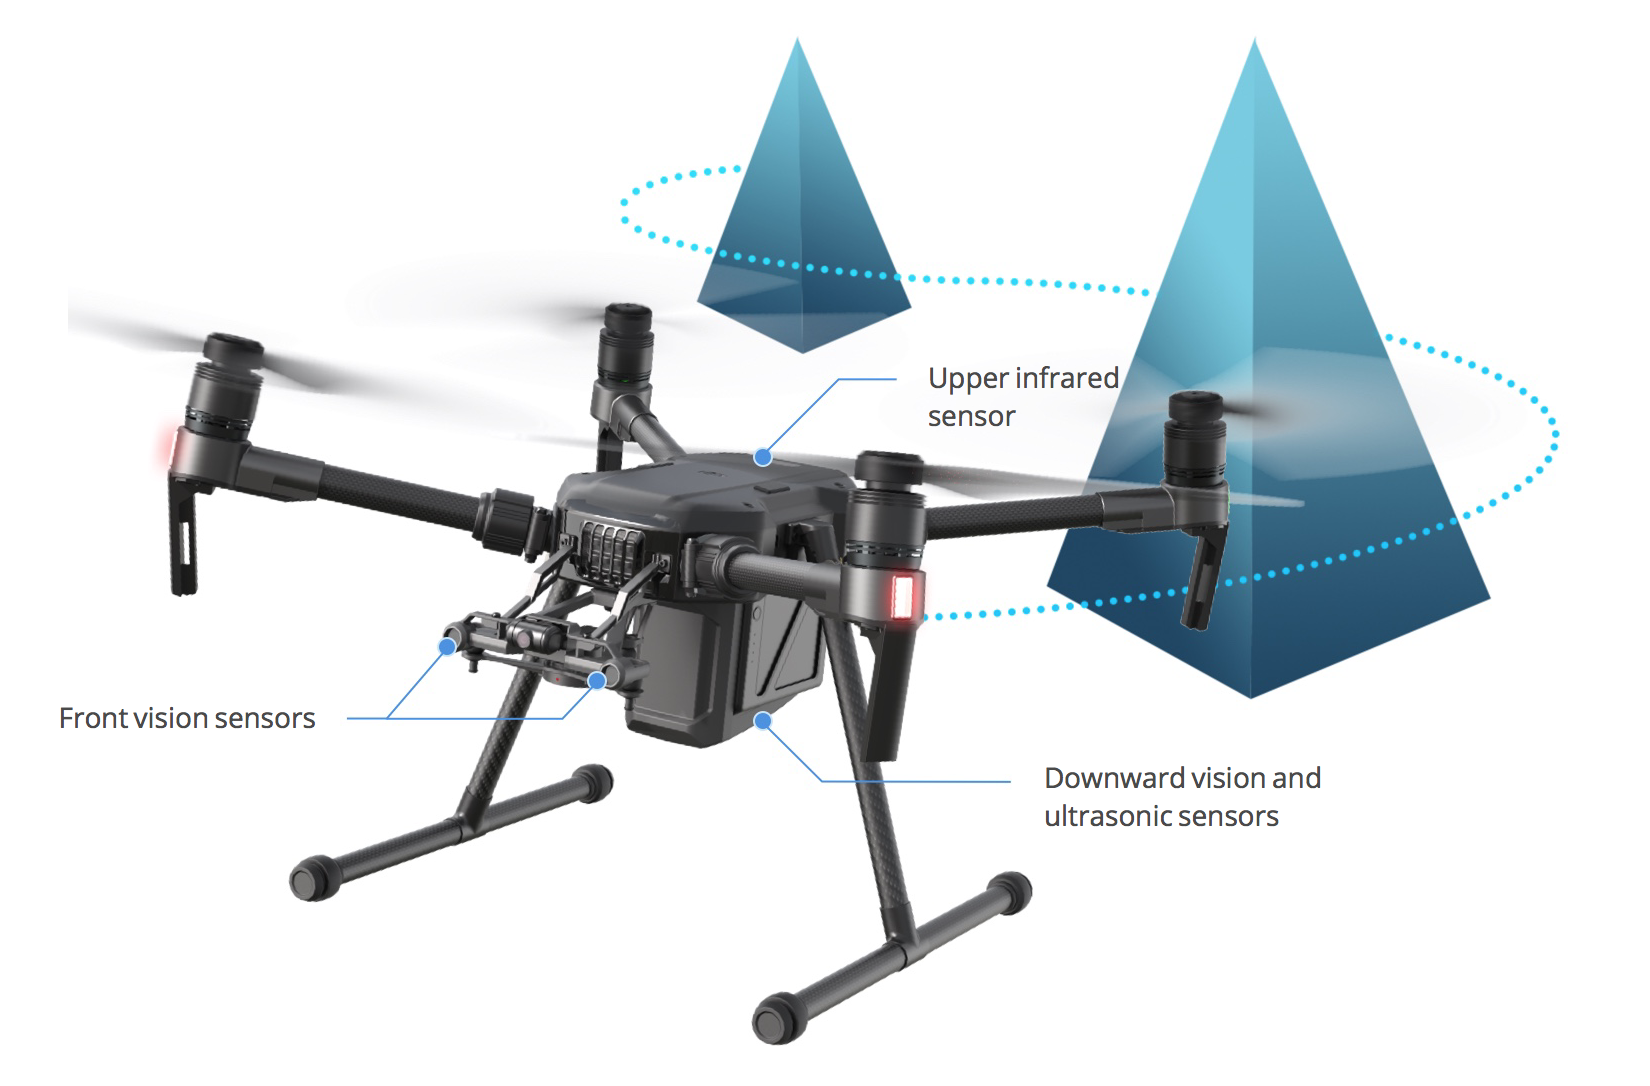 design and control of quadrotors with application to autonomous flying